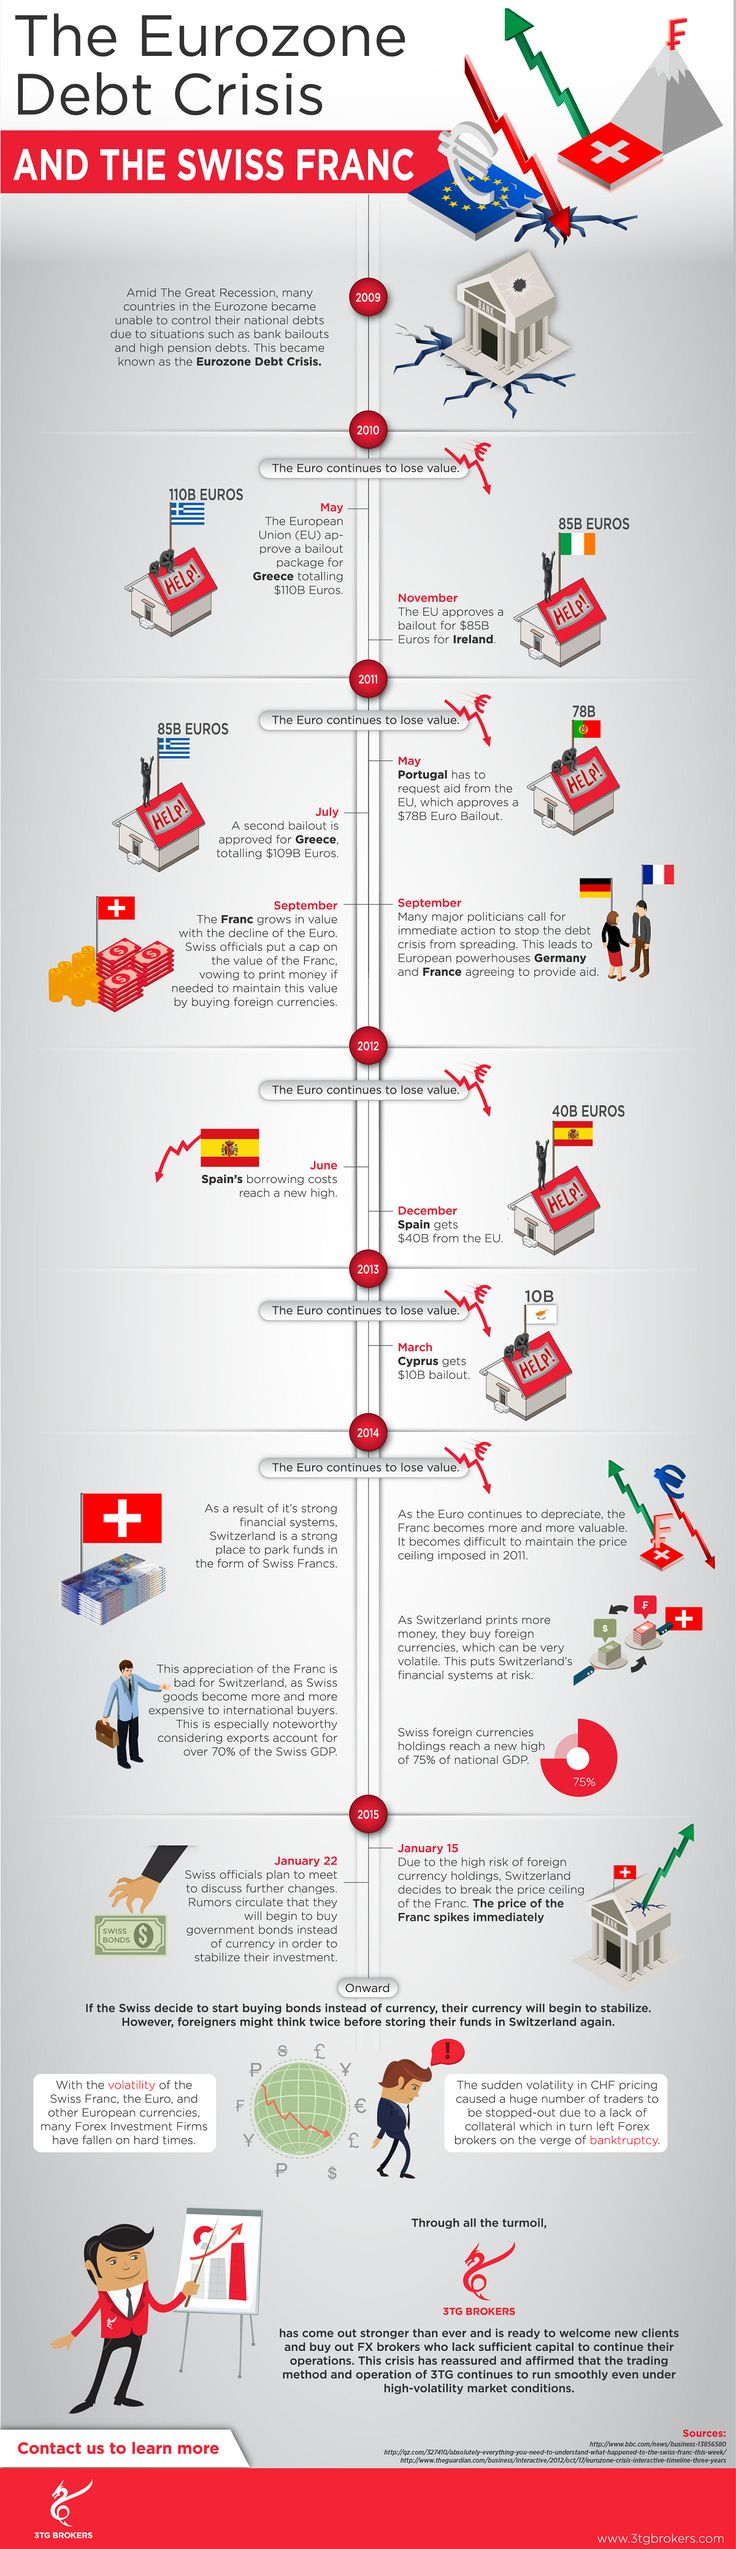 The Eurozone Debt Crisis and the Swiss Franc #infographic #Finance #Business